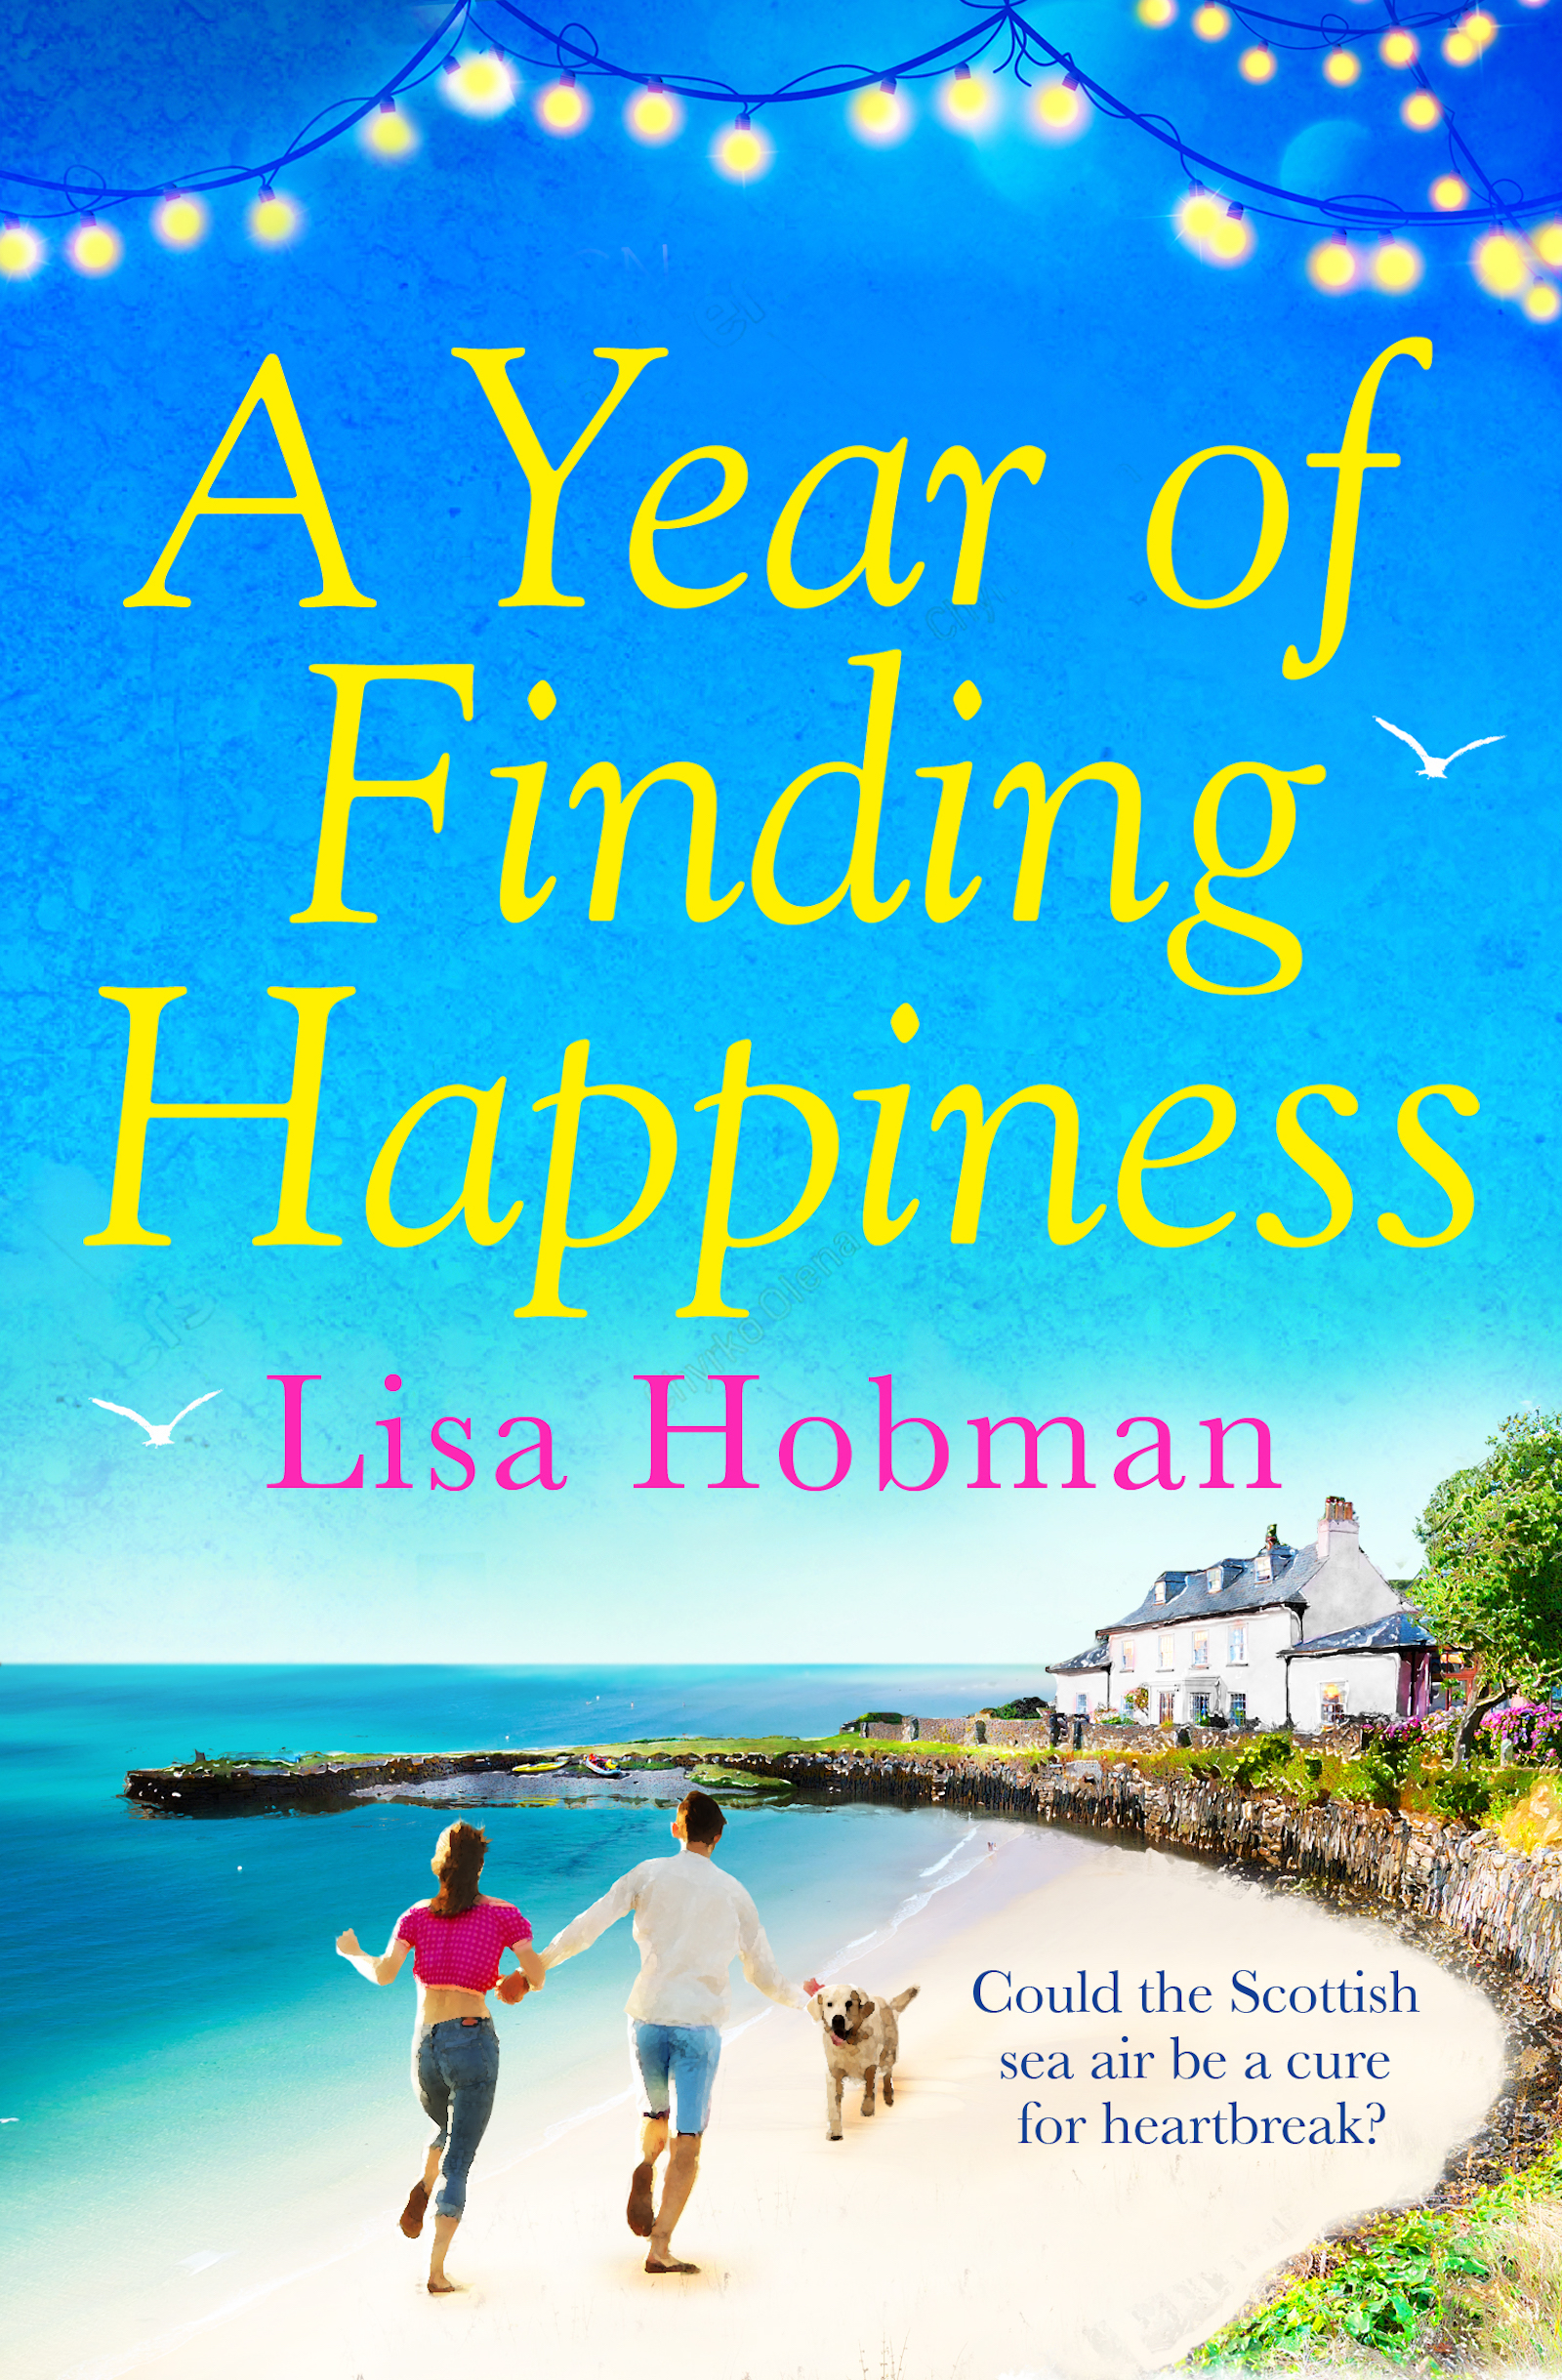 A Year Of Happiness a year of finding happinesslisa hobman | aria